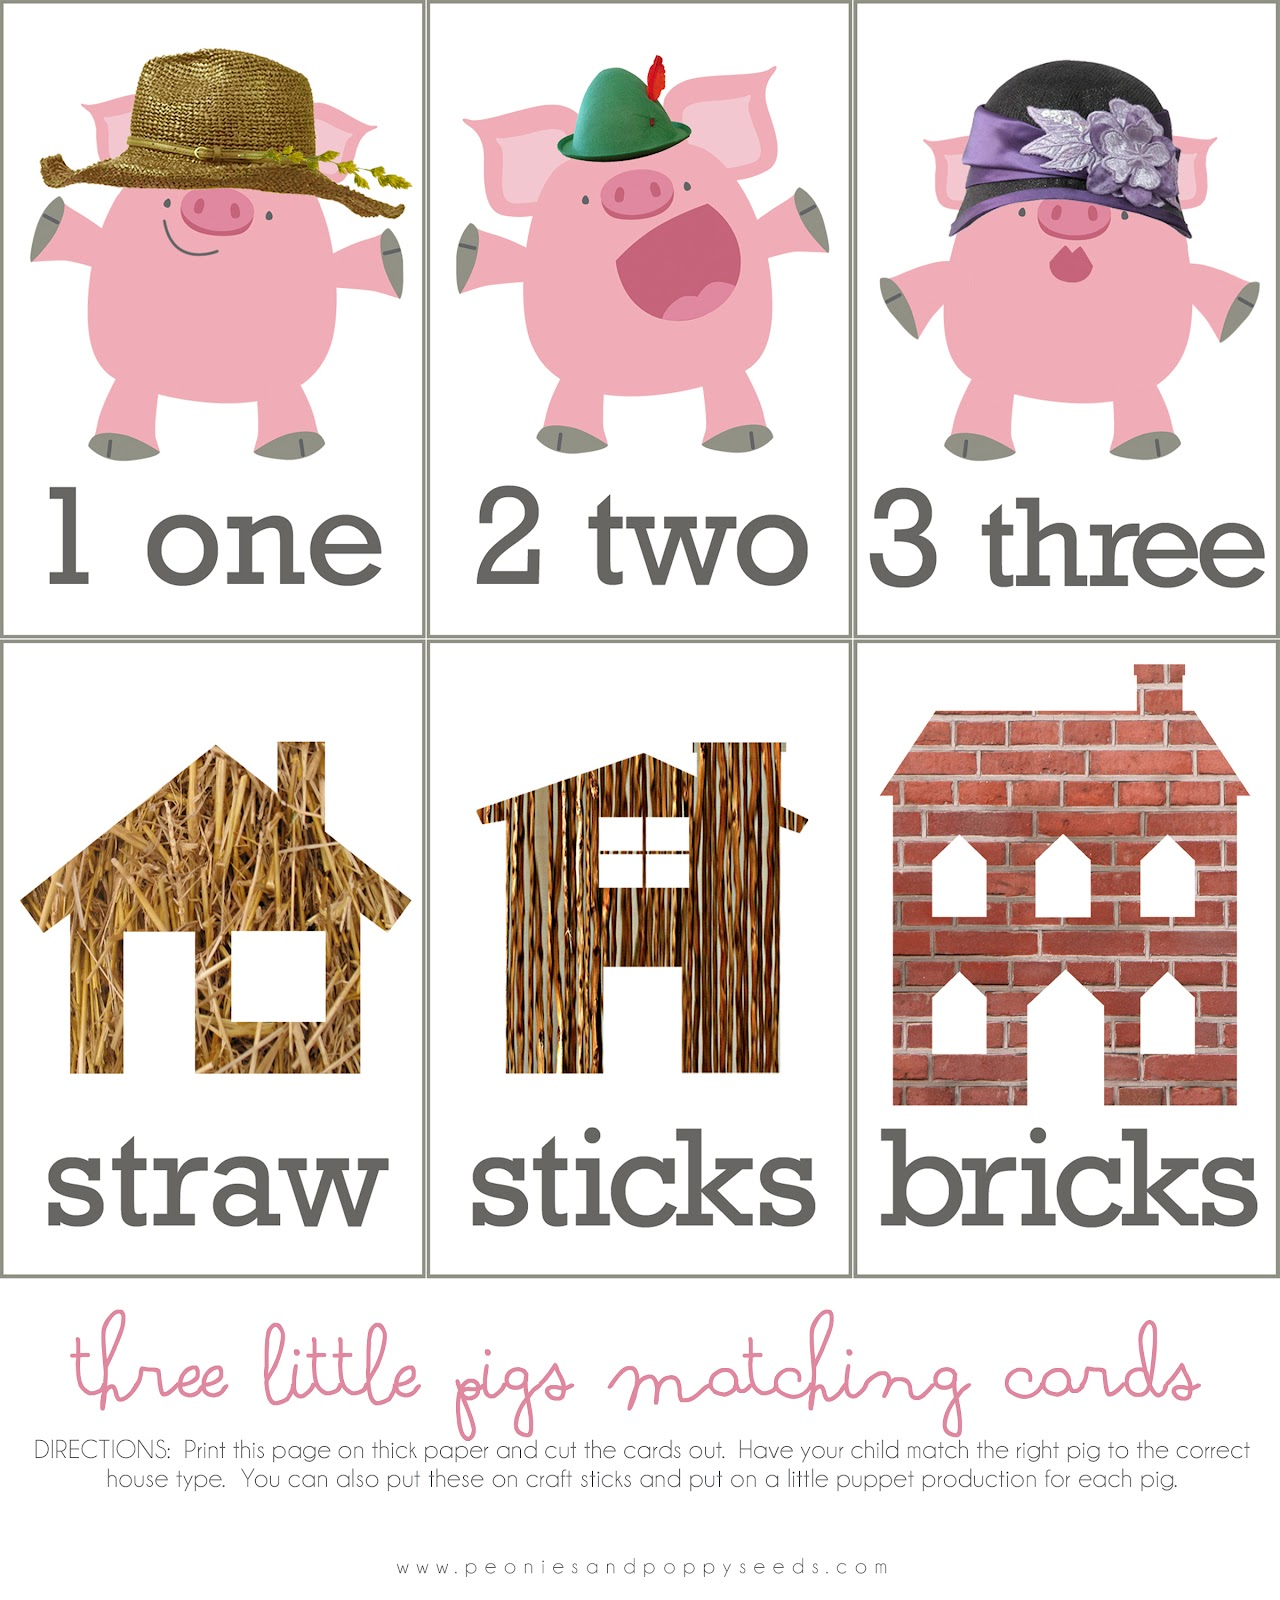 thema de drie biggetjes on Pinterest | Three Little Pigs ...